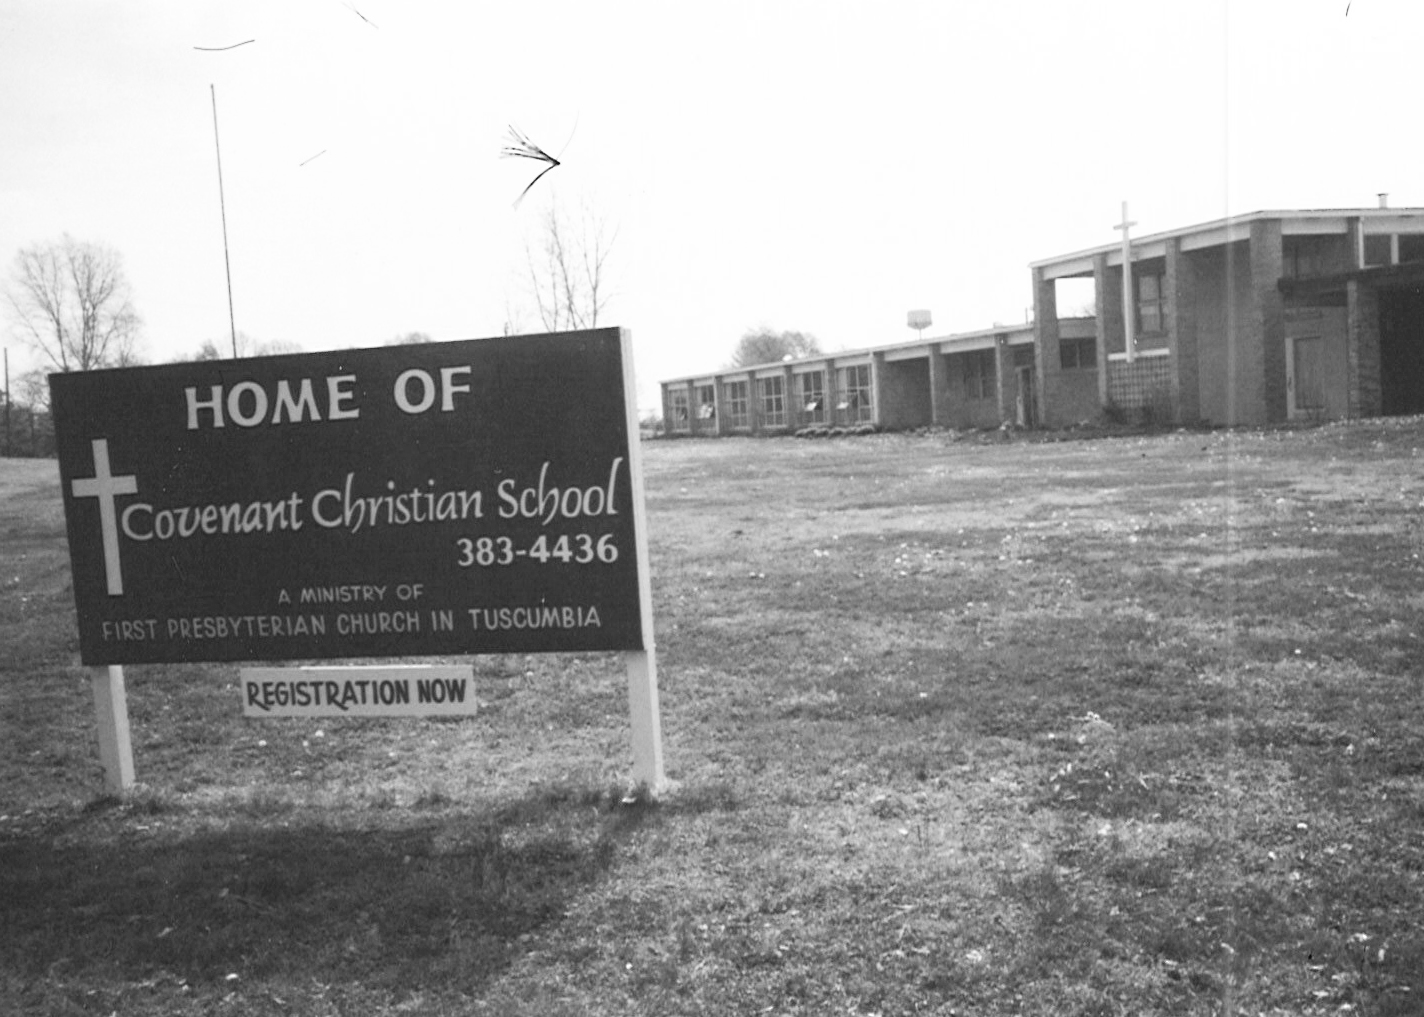 Home of Covenant Christian School